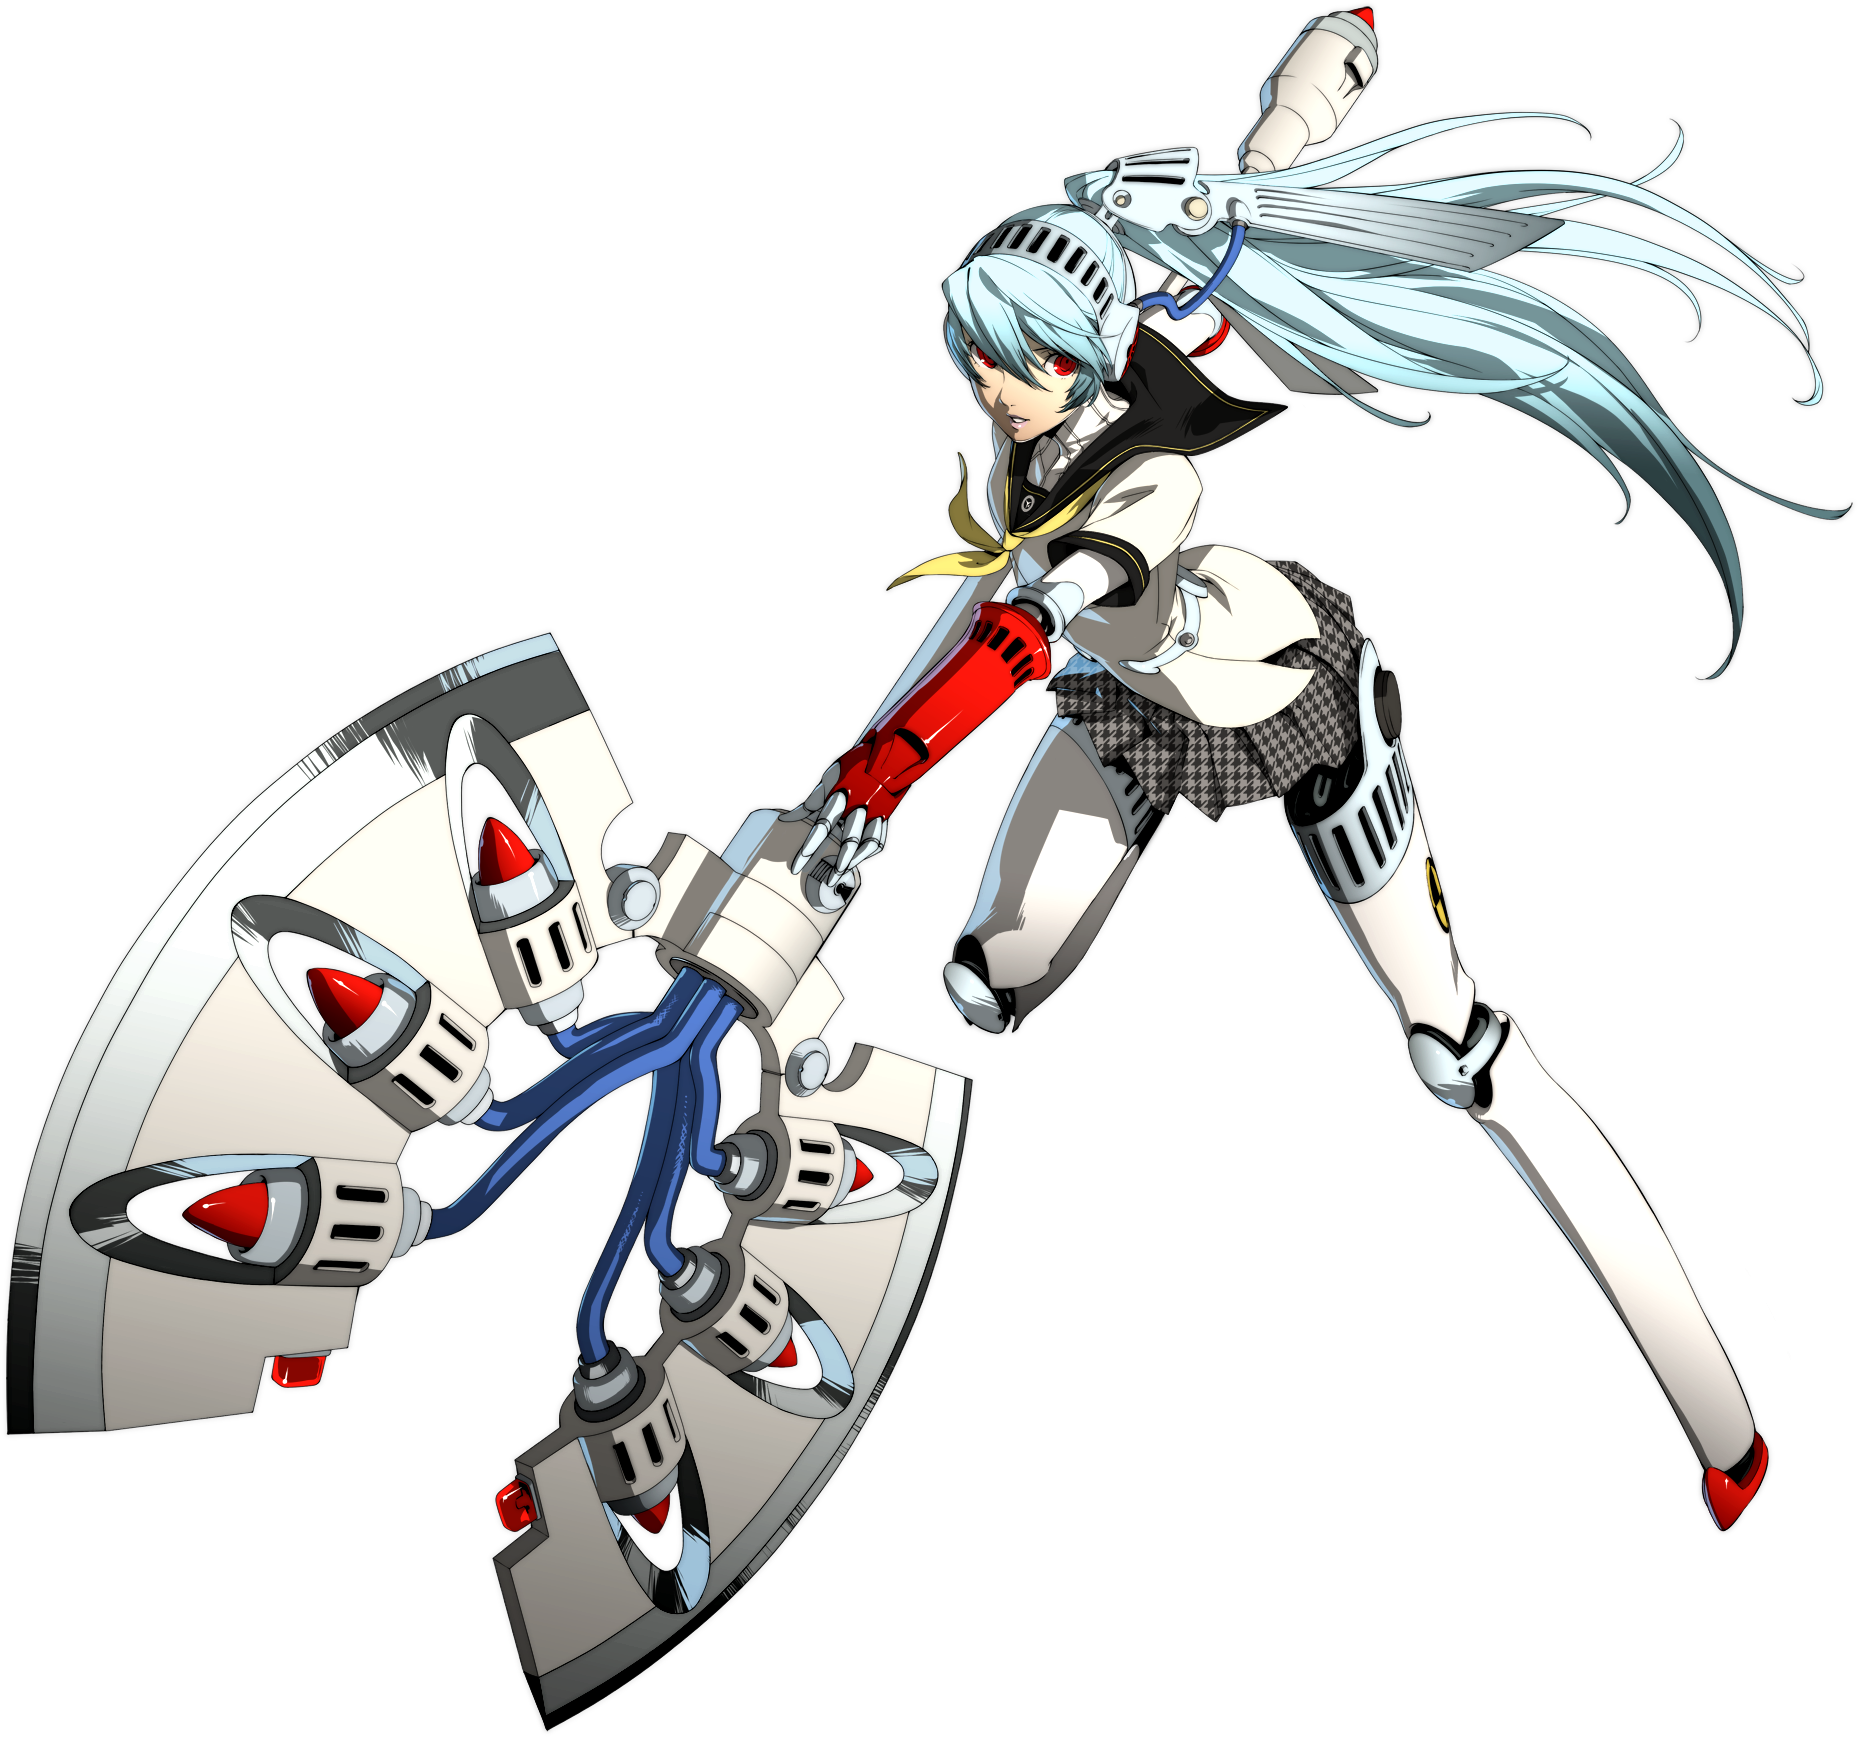 Labrys | Megami Tensei Wiki | FANDOM powered by Wikia